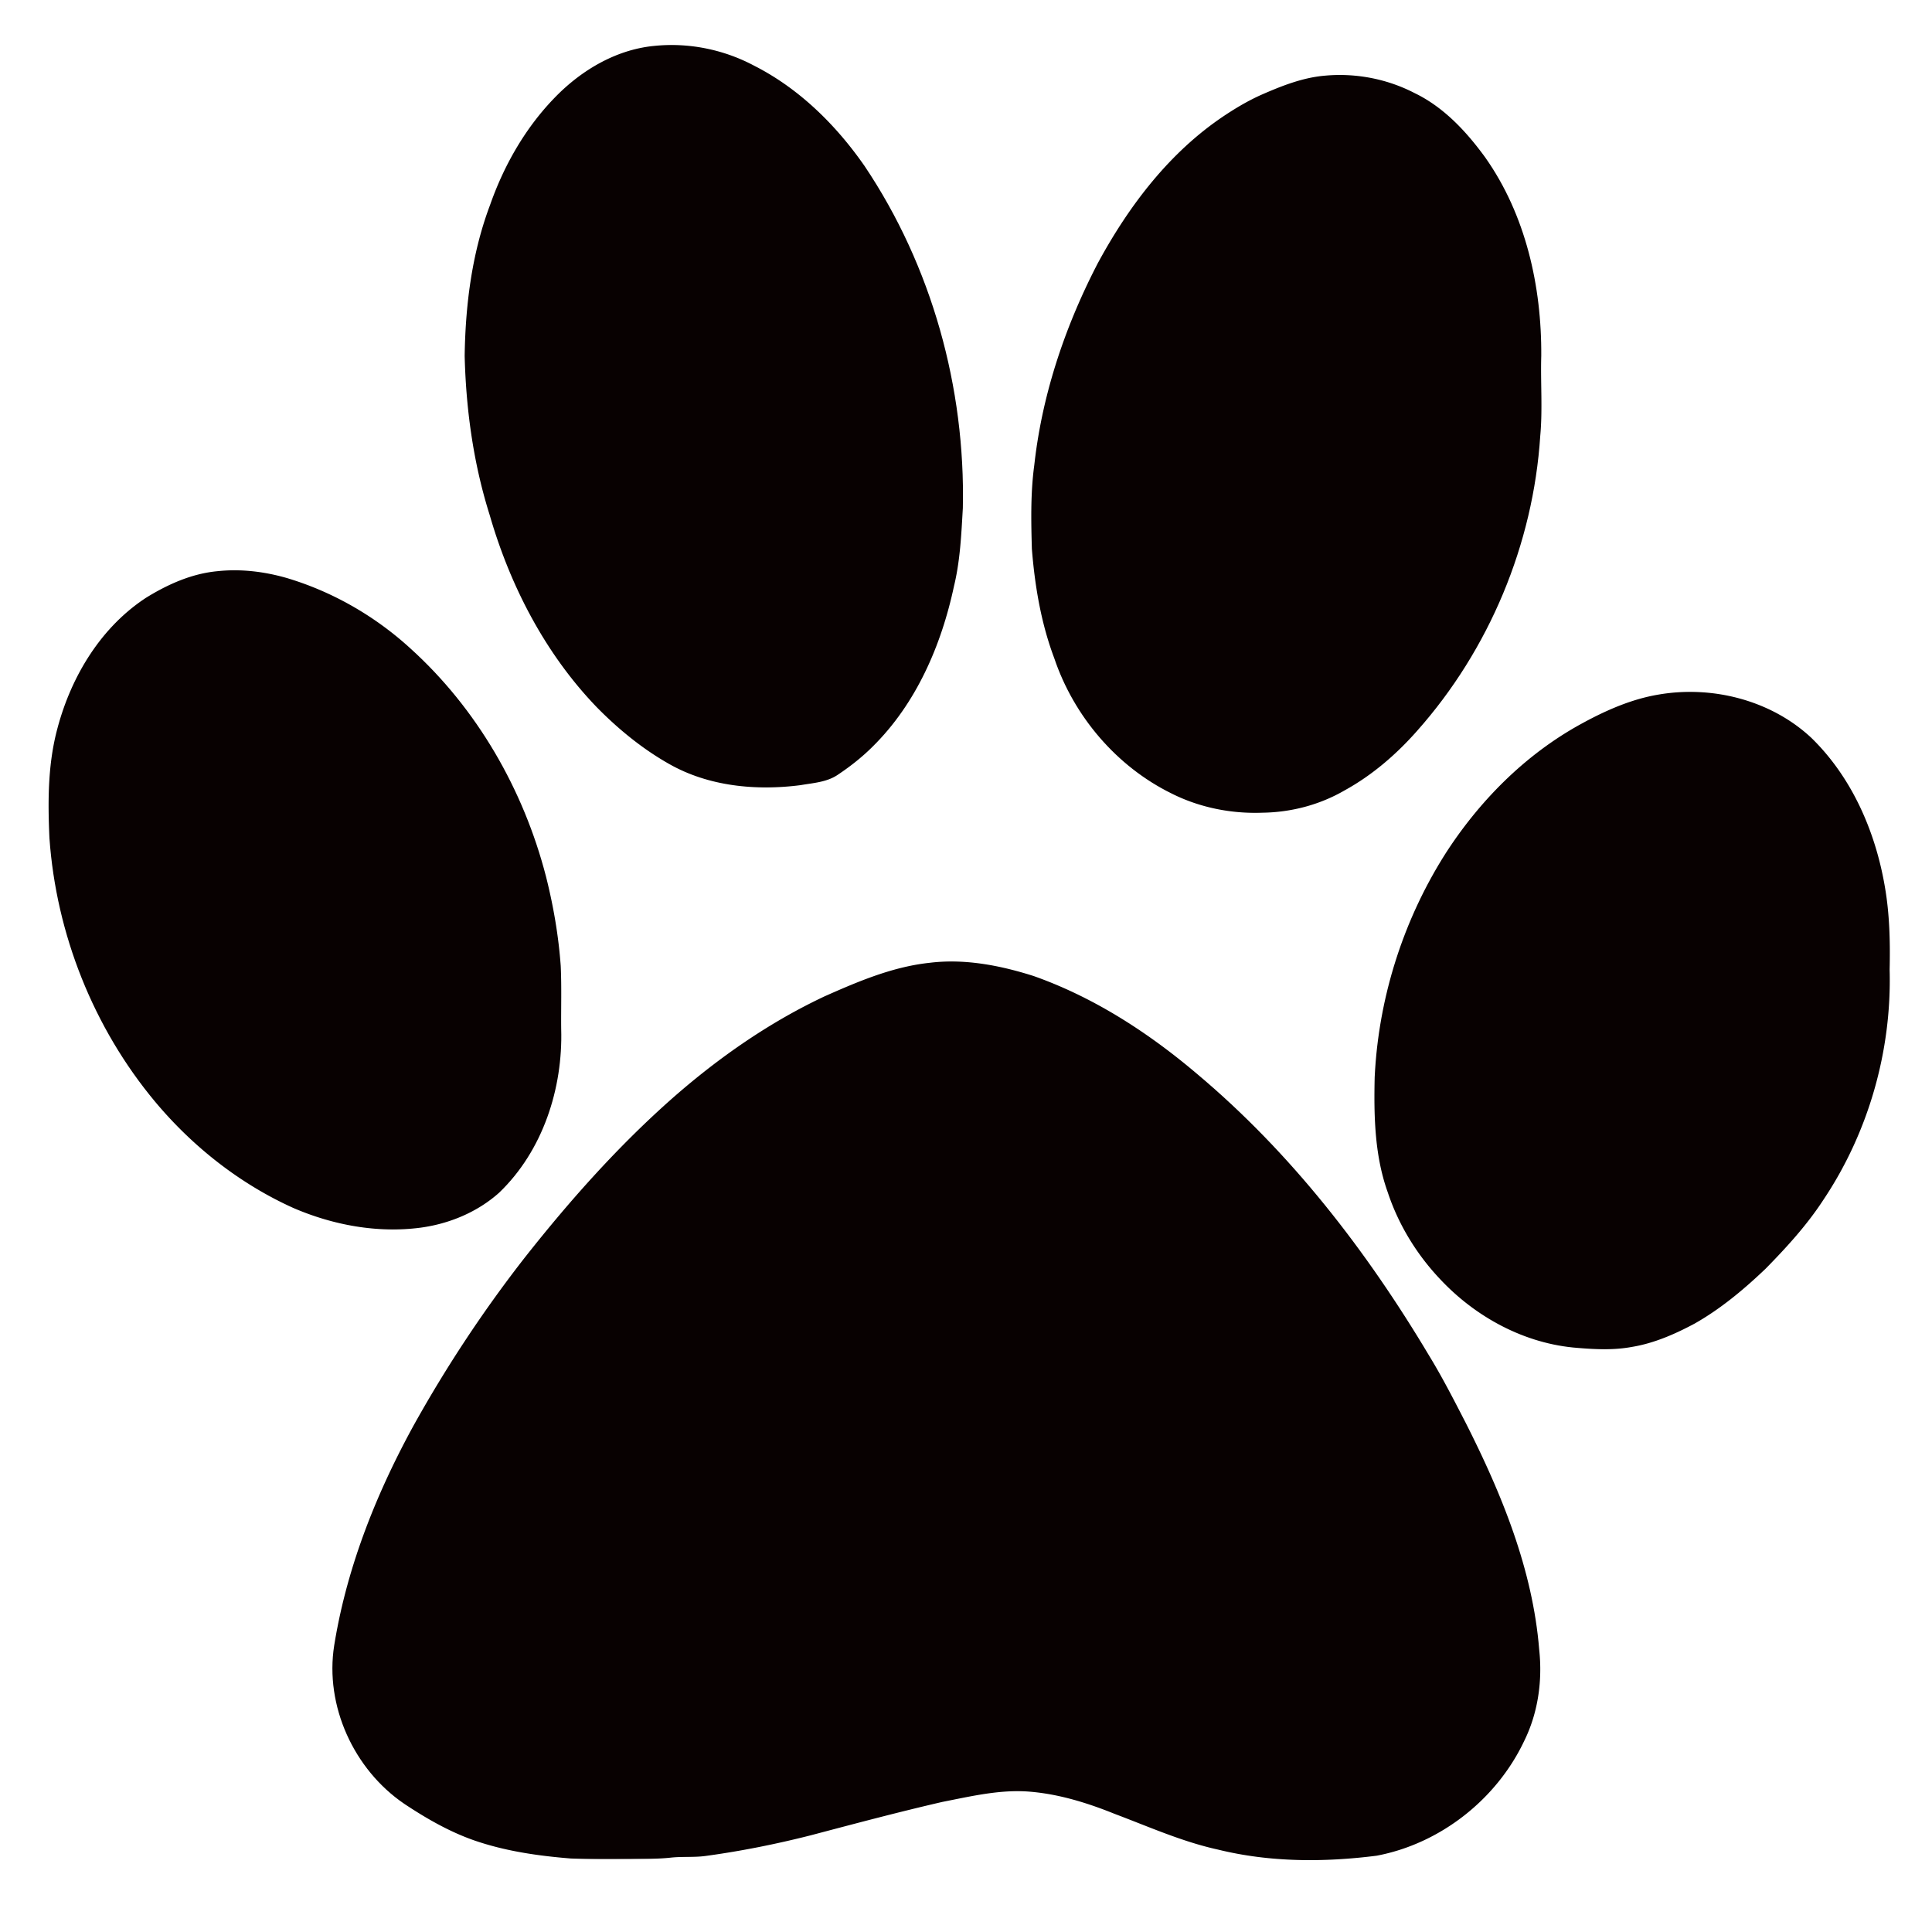 paw print silhouette at getdrawings com free for personal use paw rh getdrawings com paw clipart pawn clip art